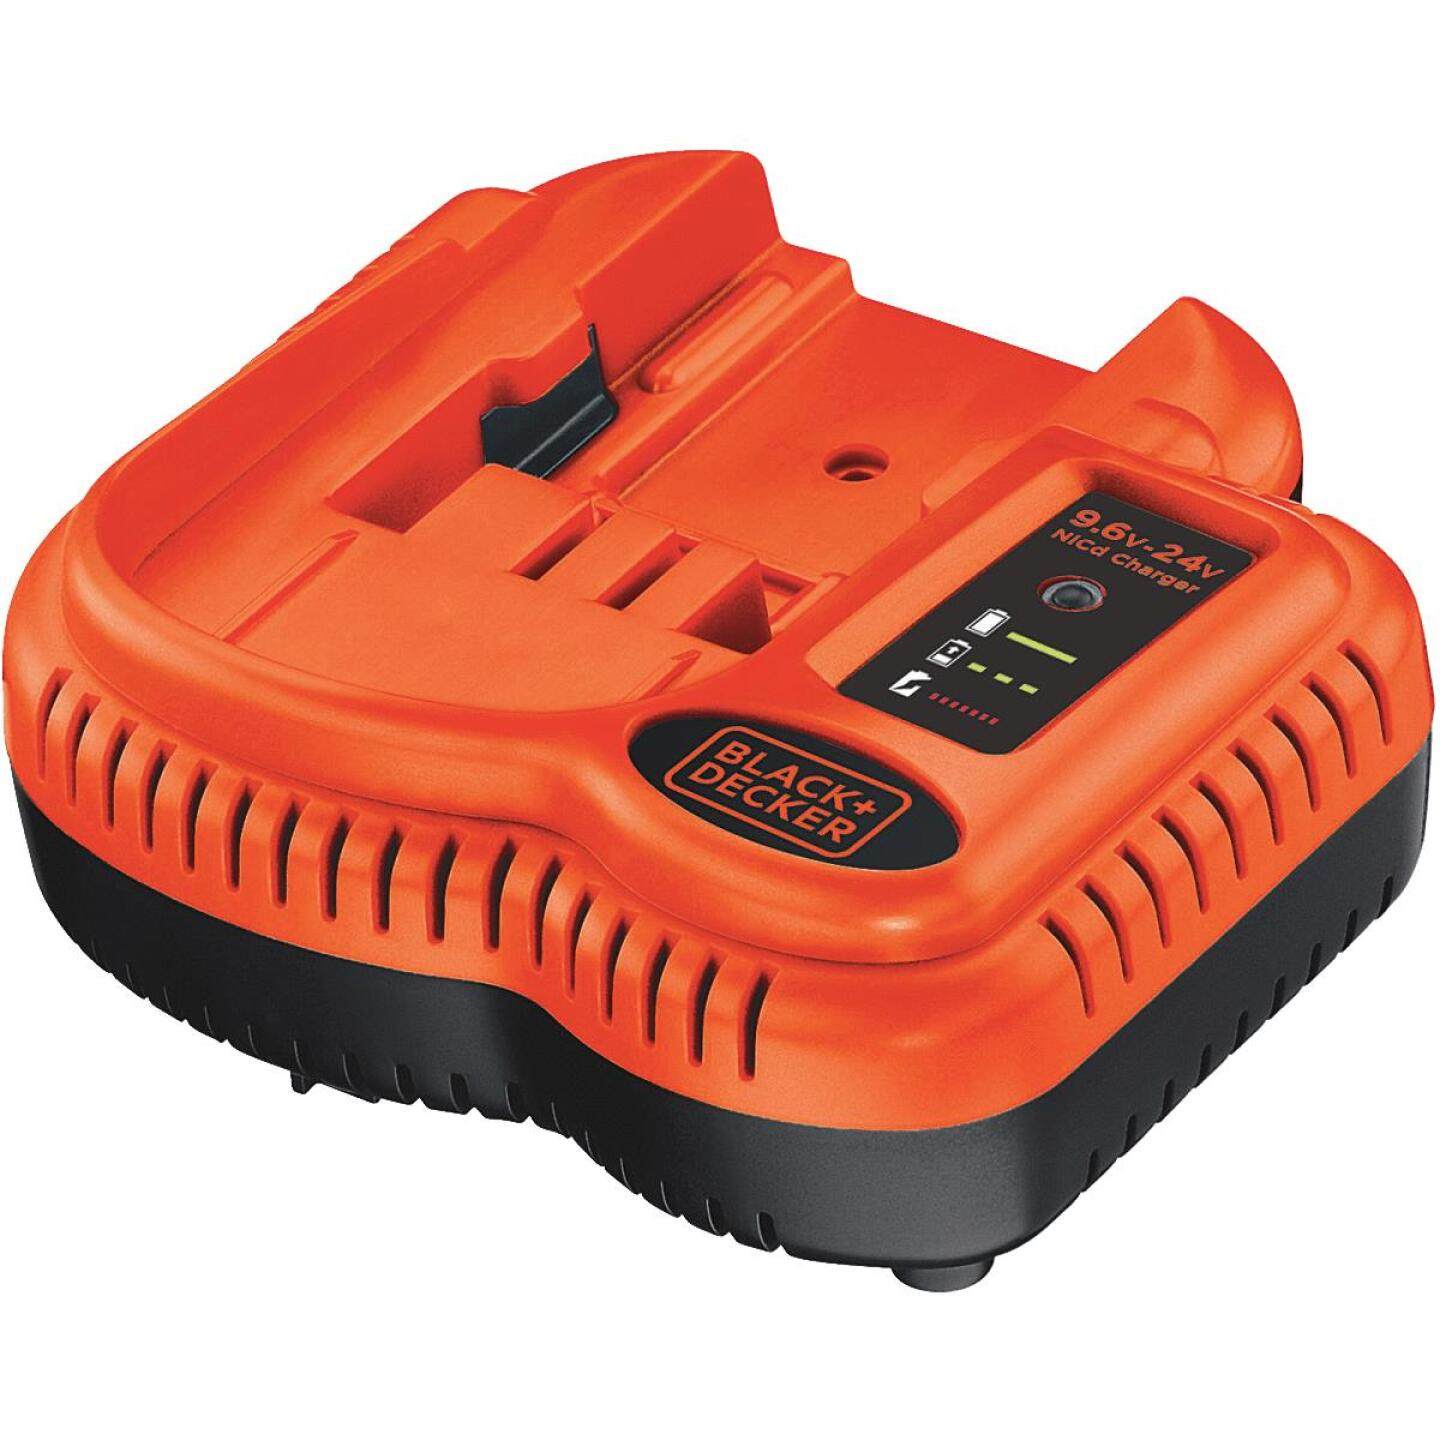 Black & Decker 9.6-Volt to 18-Volt Nickel-Cadmium Battery Charger Image 1